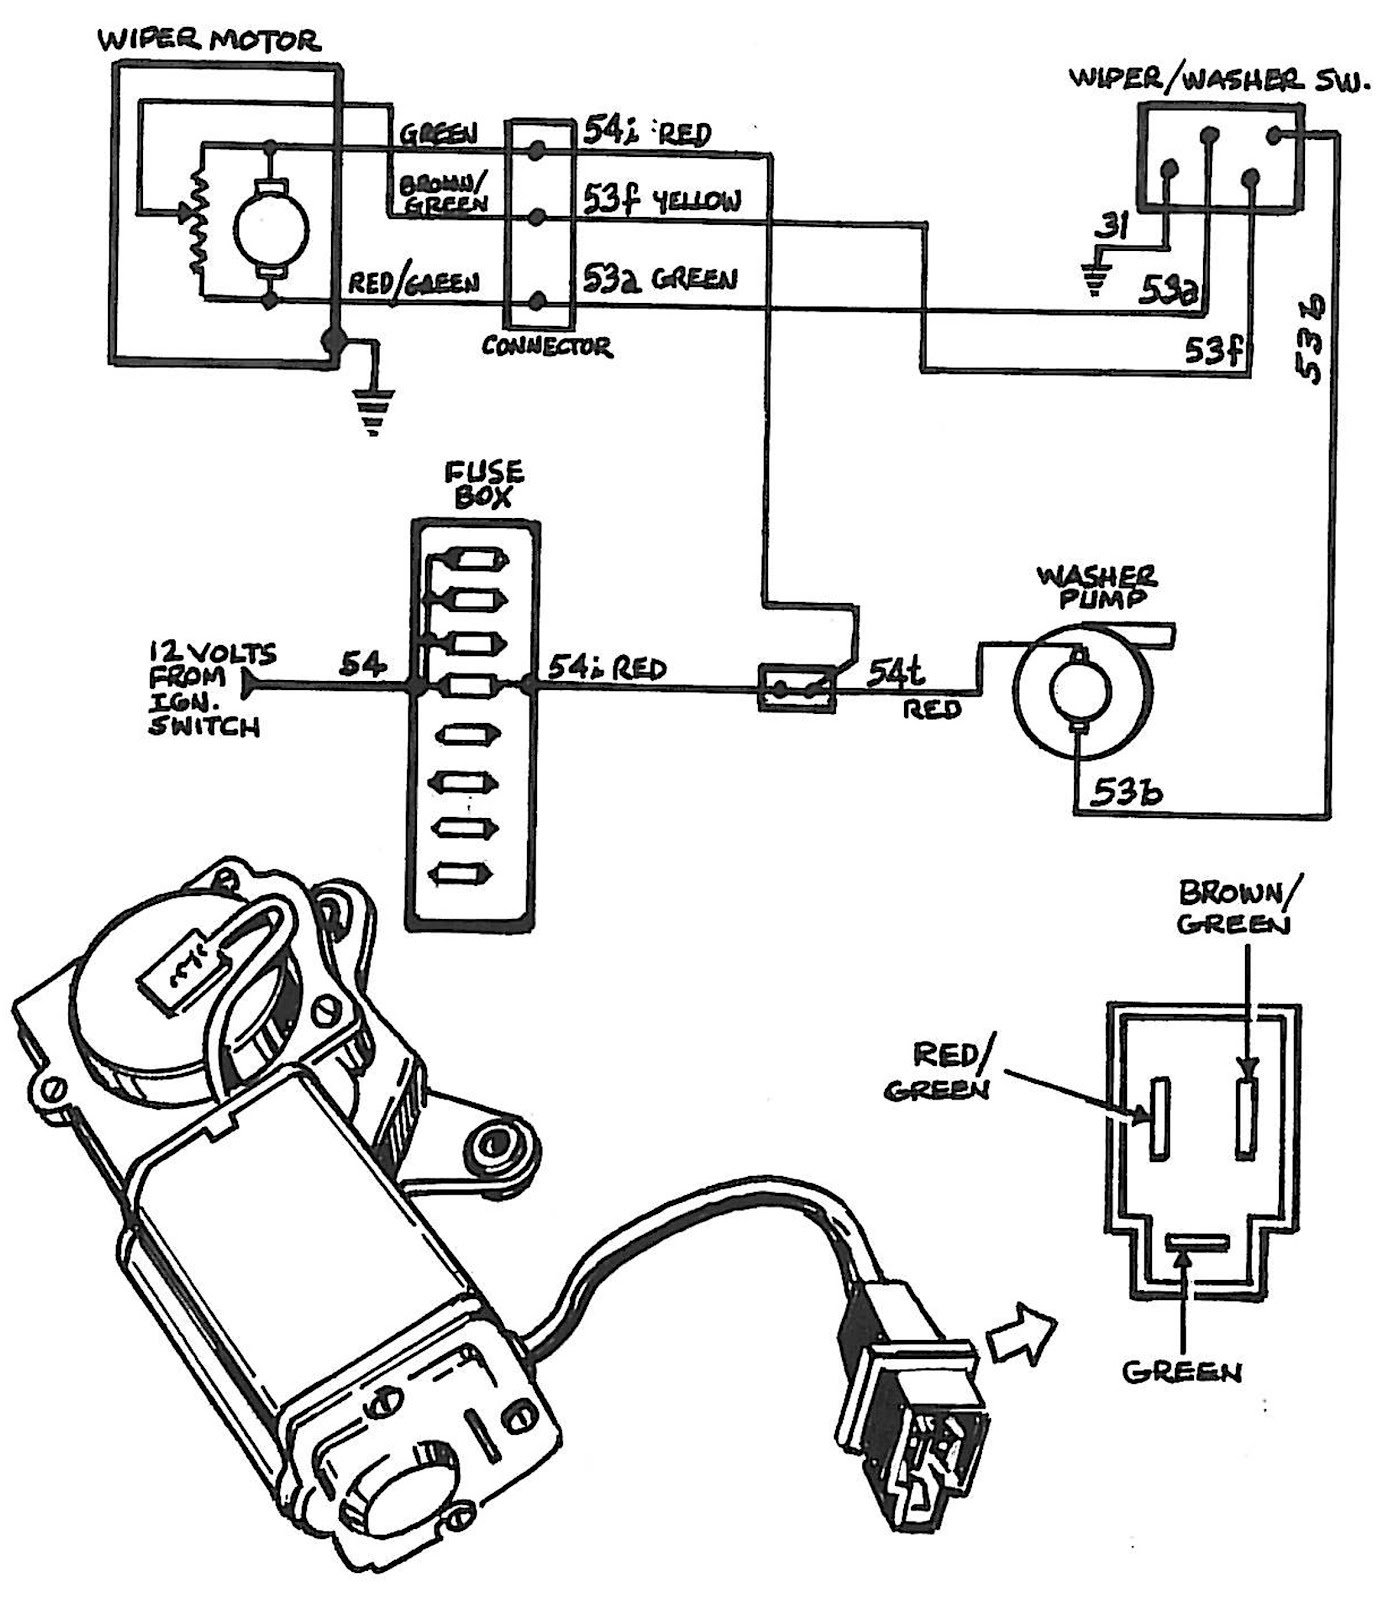 chevy windshield wiper motor wiring diagram CgTTPww trico wiper motor wiring diagram windshield wiper motor diagram sprague wiper motor wiring diagram at crackthecode.co